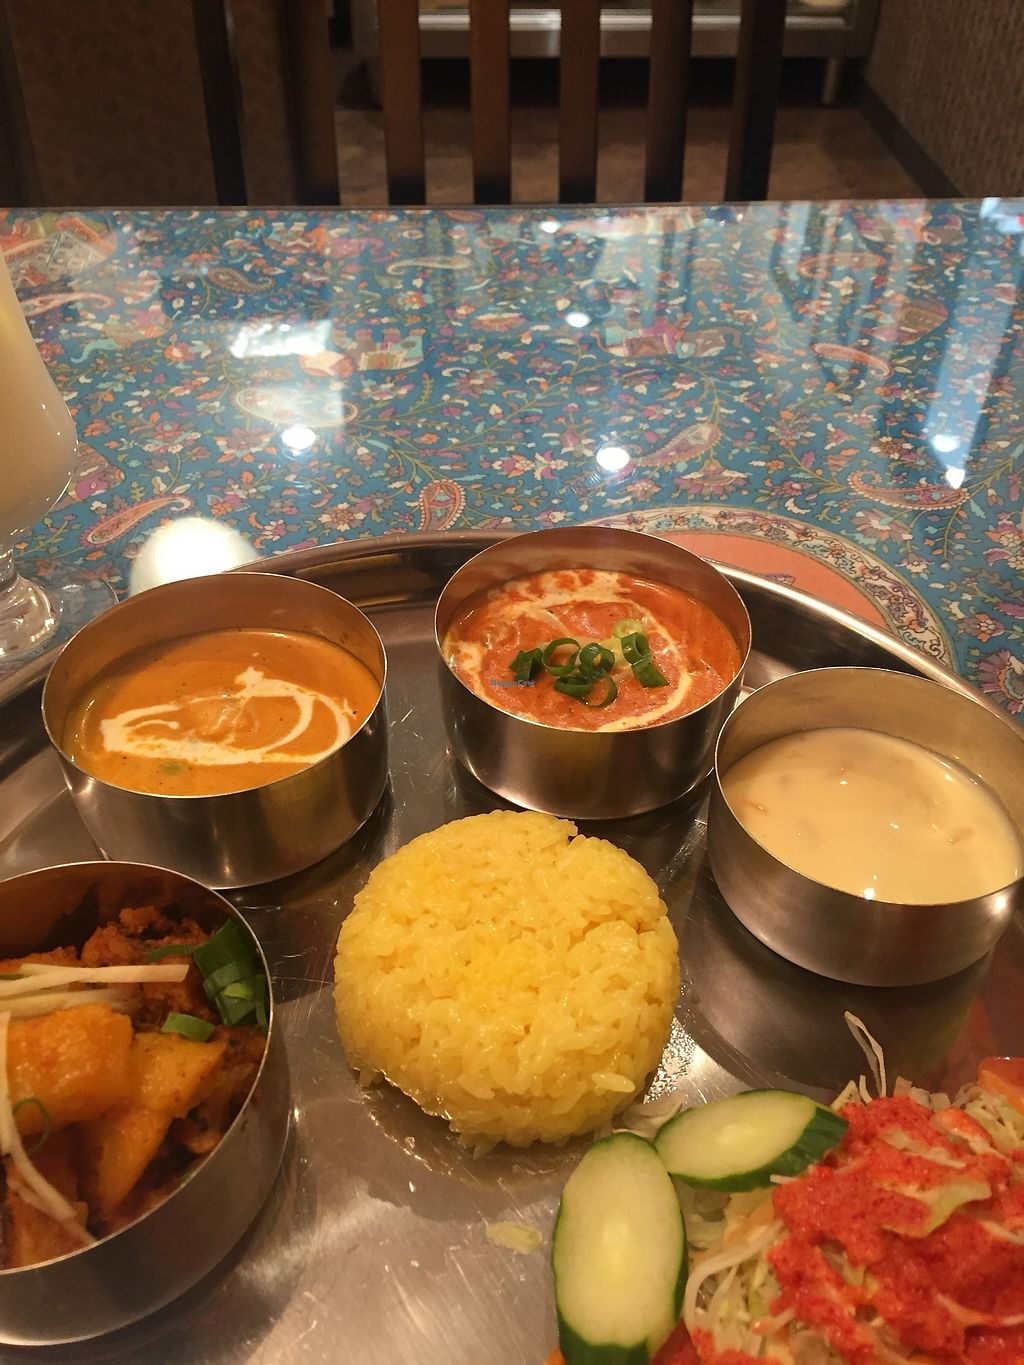 "Photo of Tandoor Indian Restaurant  by <a href=""/members/profile/Vegeiko"">Vegeiko</a> <br/>Vegetarian set <br/> August 4, 2017  - <a href='/contact/abuse/image/97772/288819'>Report</a>"